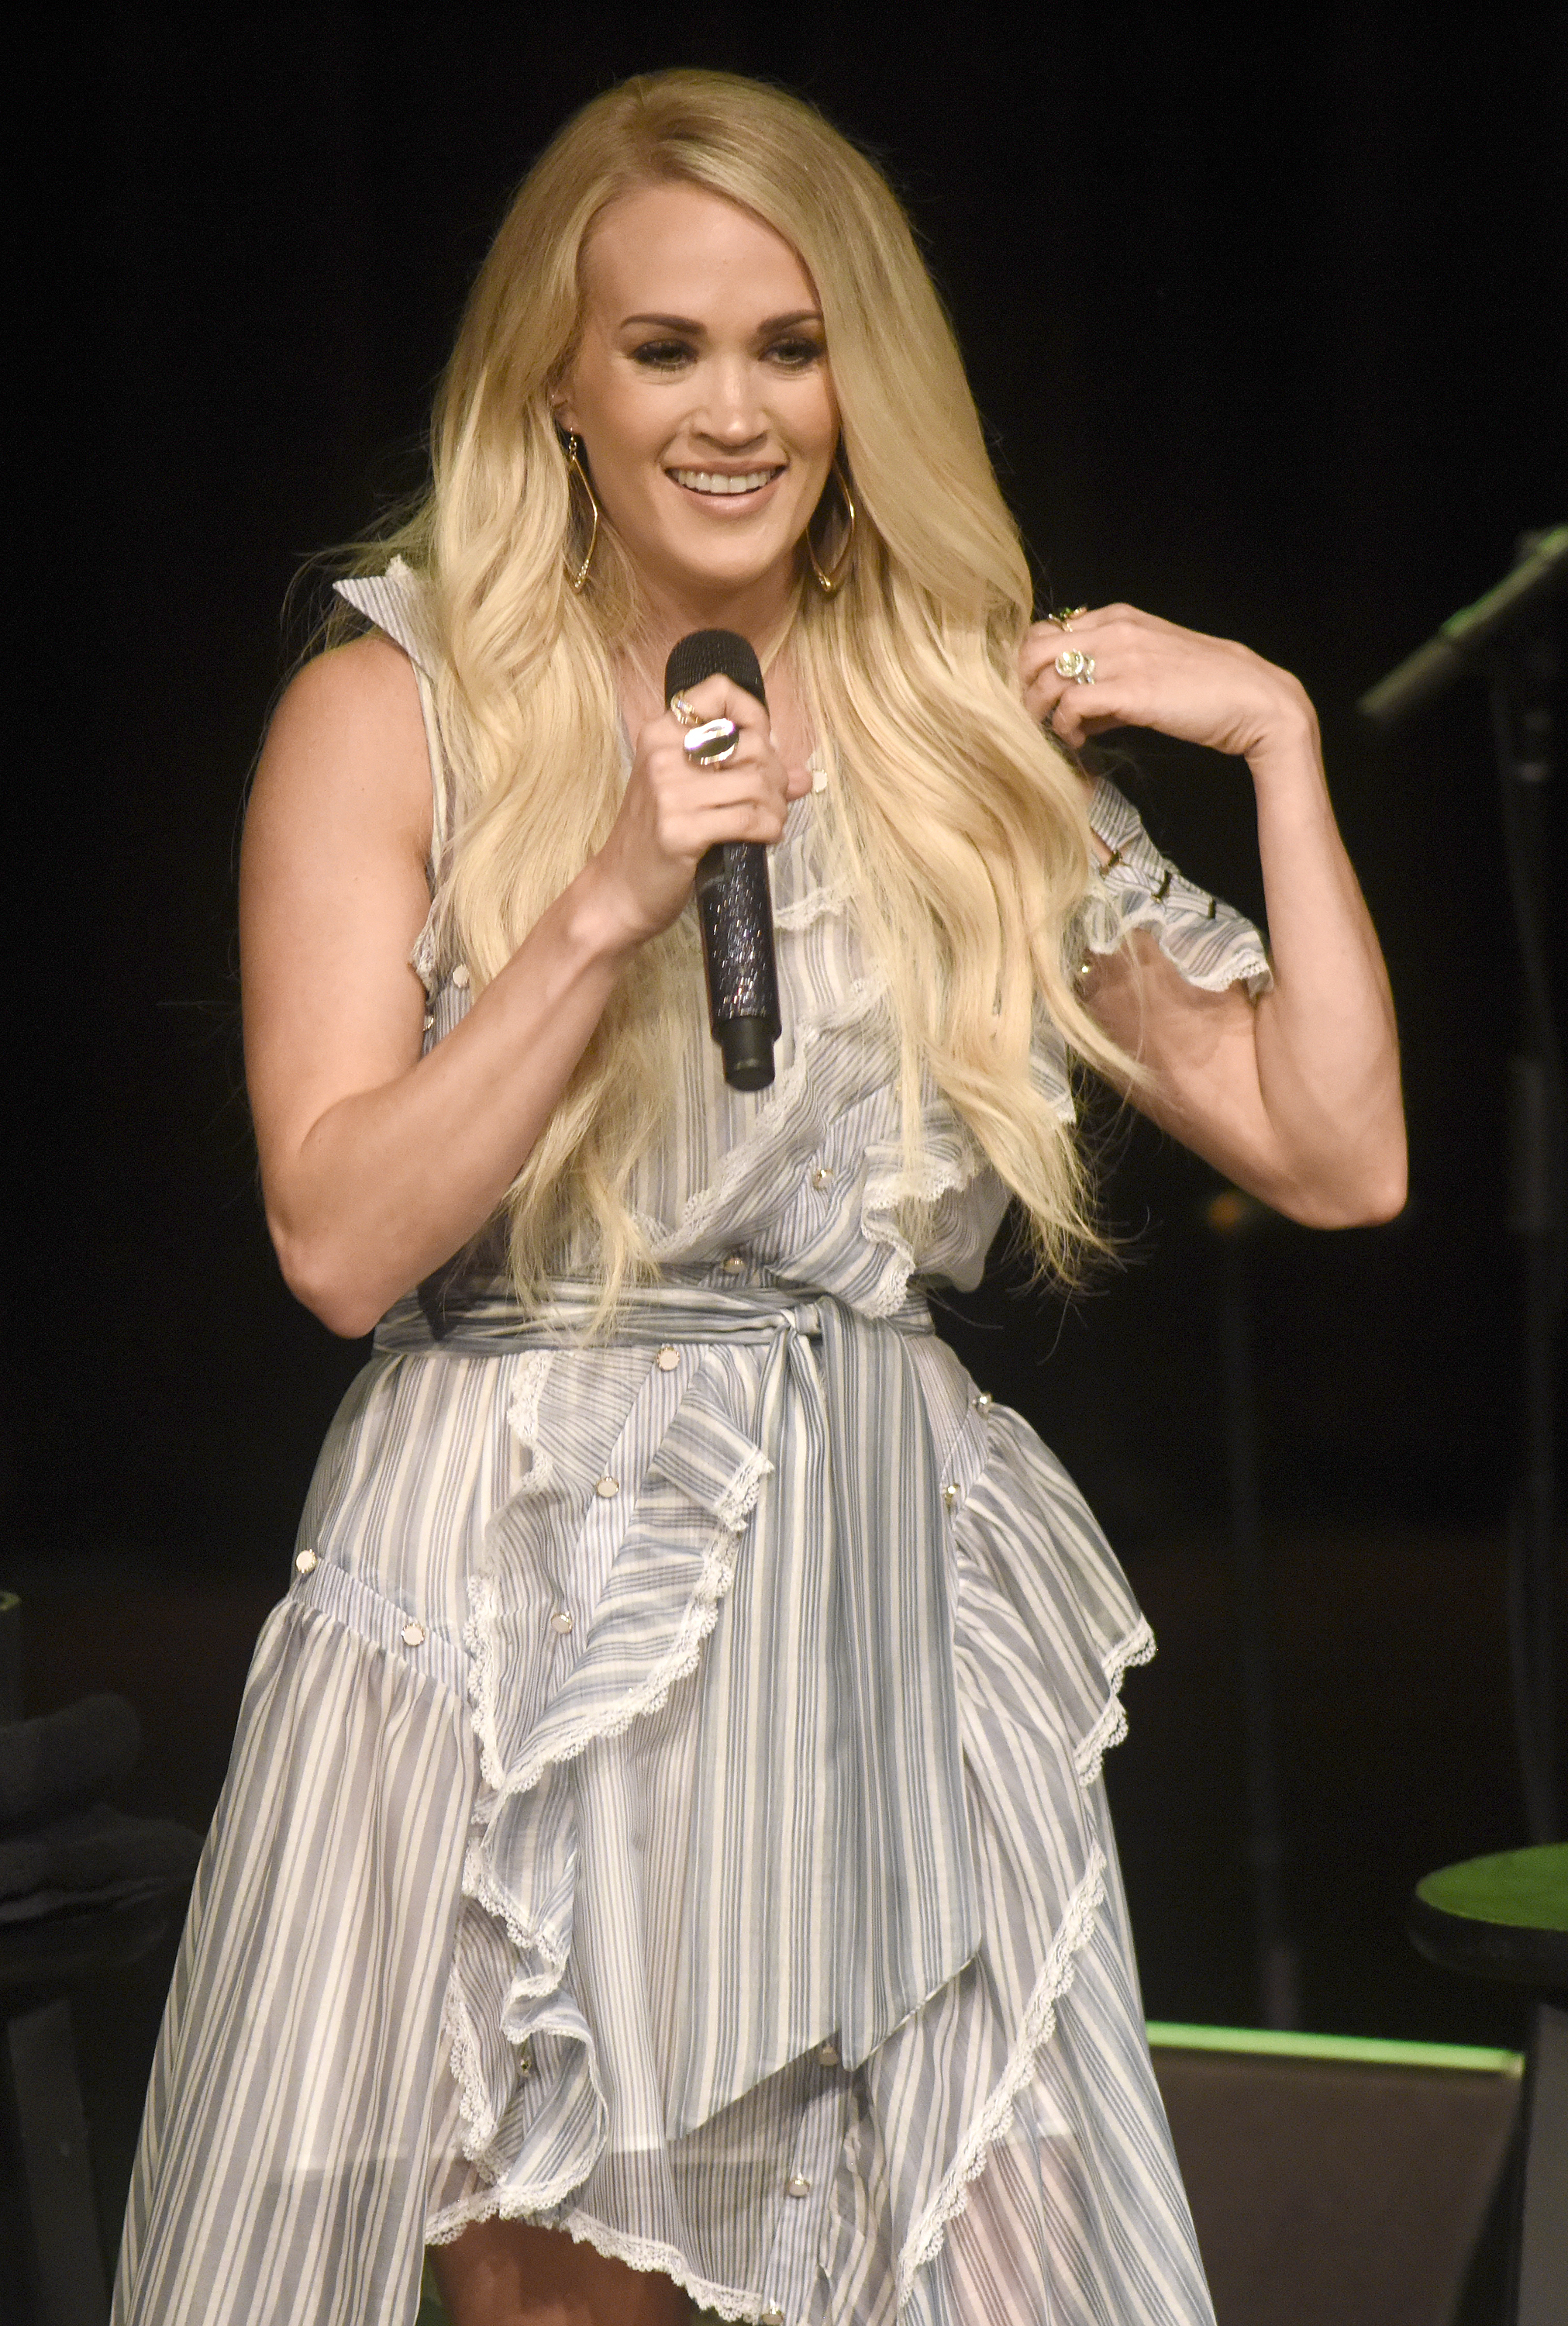 Carrie Underwood performs at the Jam Cellars Ballroom during Live In The Vineyard Goes Country in Napa, California, on May 16, 2018.